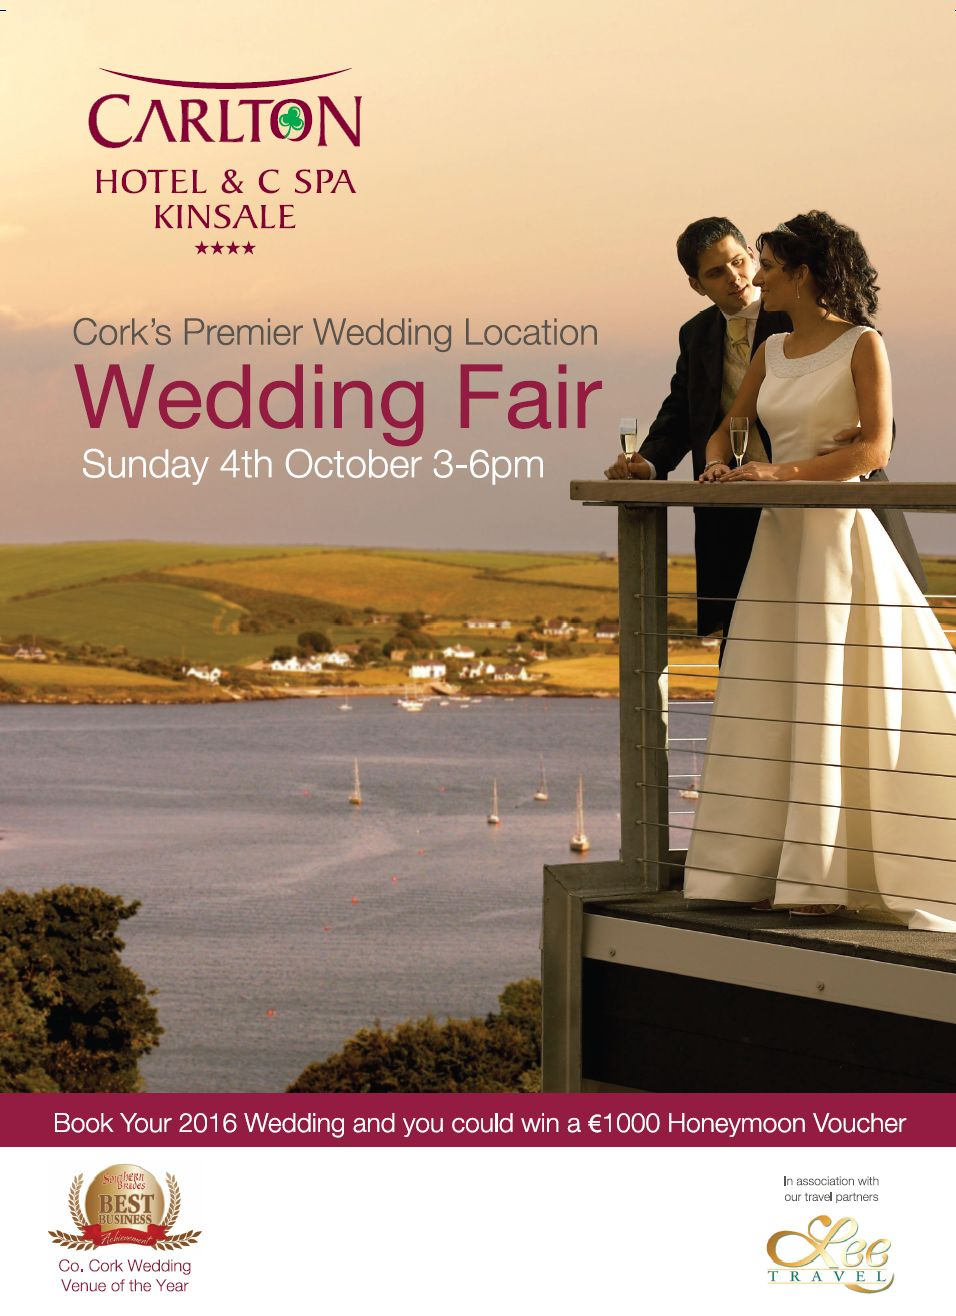 Best Wedding Venue in Kinsale County Cork